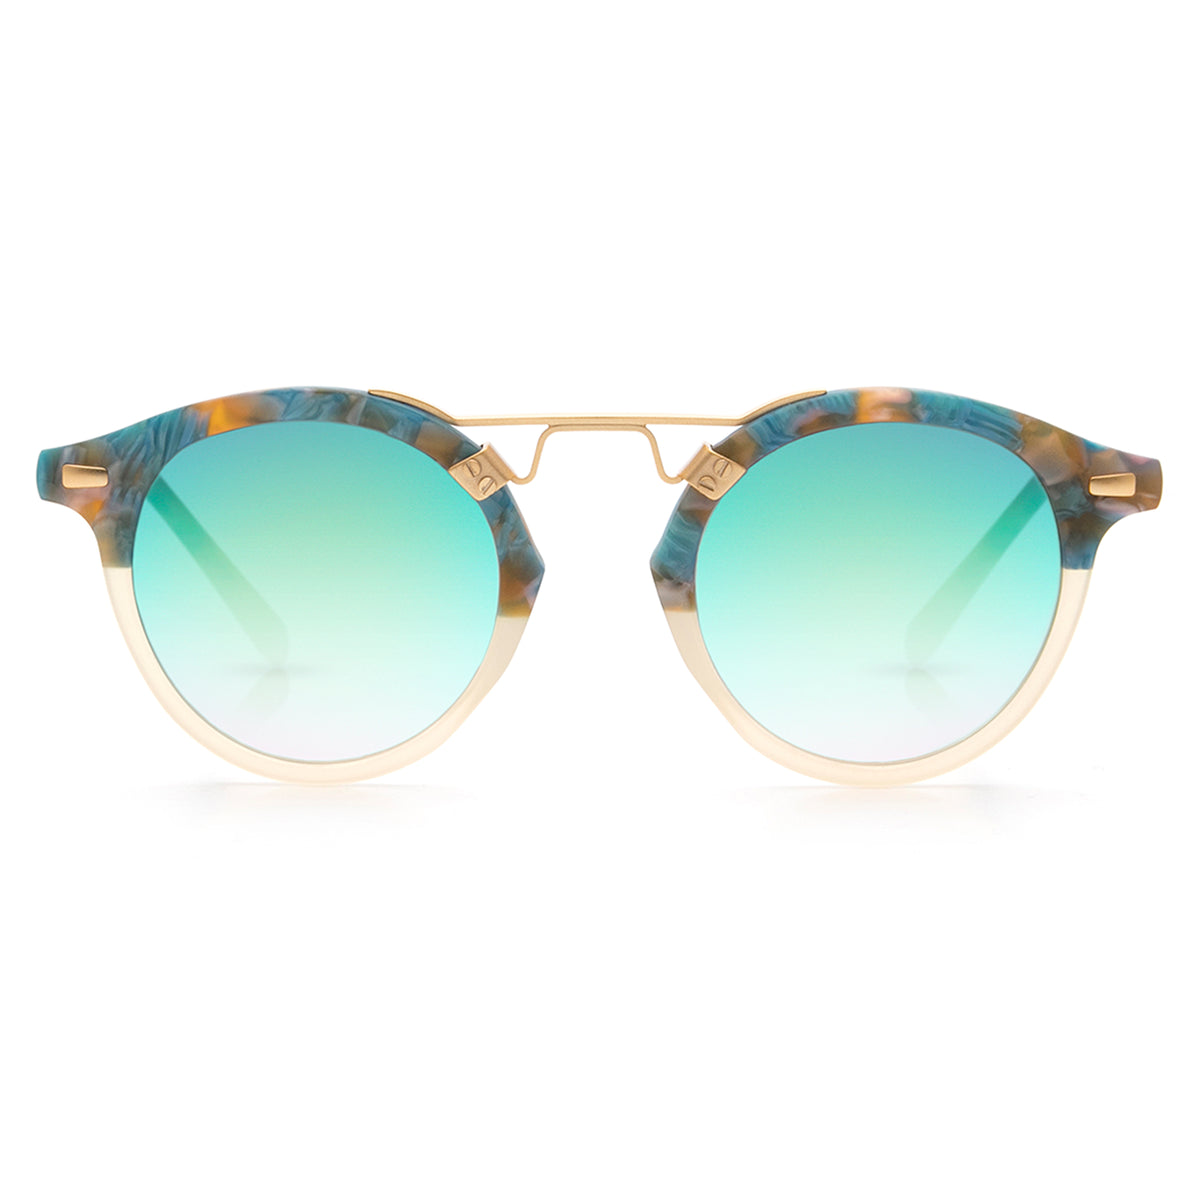 ST. LOUIS MIRRORED | Matte Isle to Champagne 24K handcrafted acetate Sunglasses